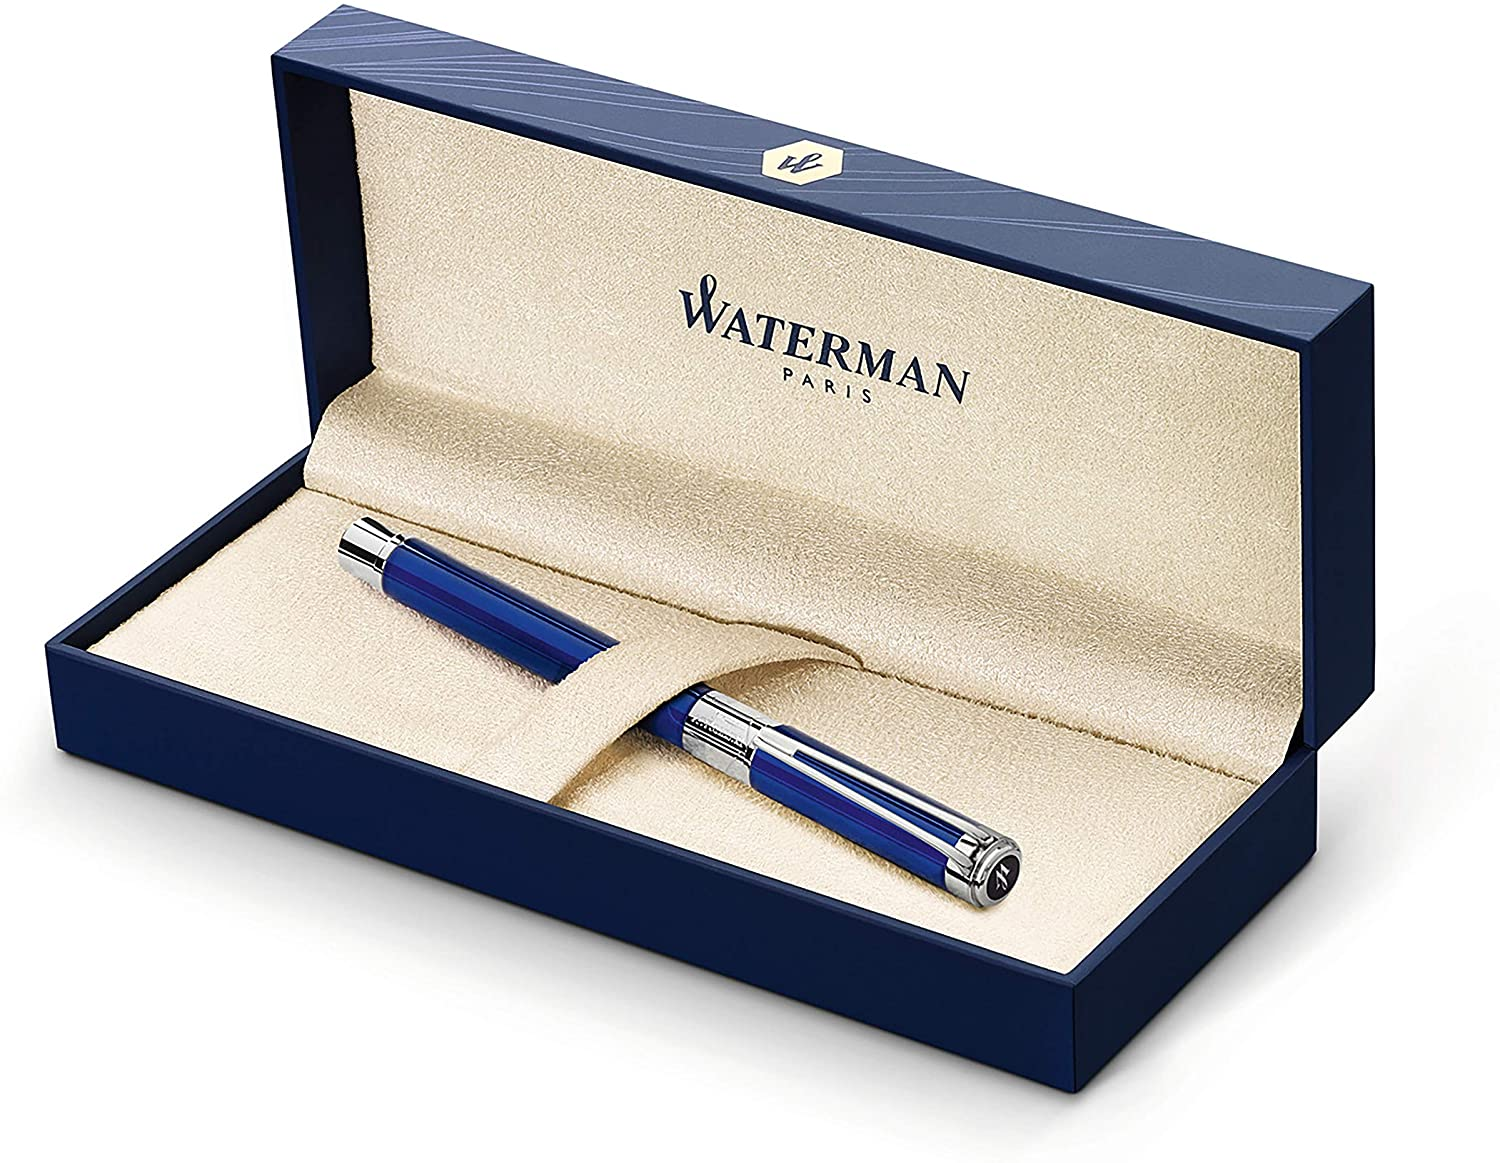 Waterman Perspective Rollerball Pen, Gloss Black with Chrome Trim, Medium Point with Black Ink Cartridge